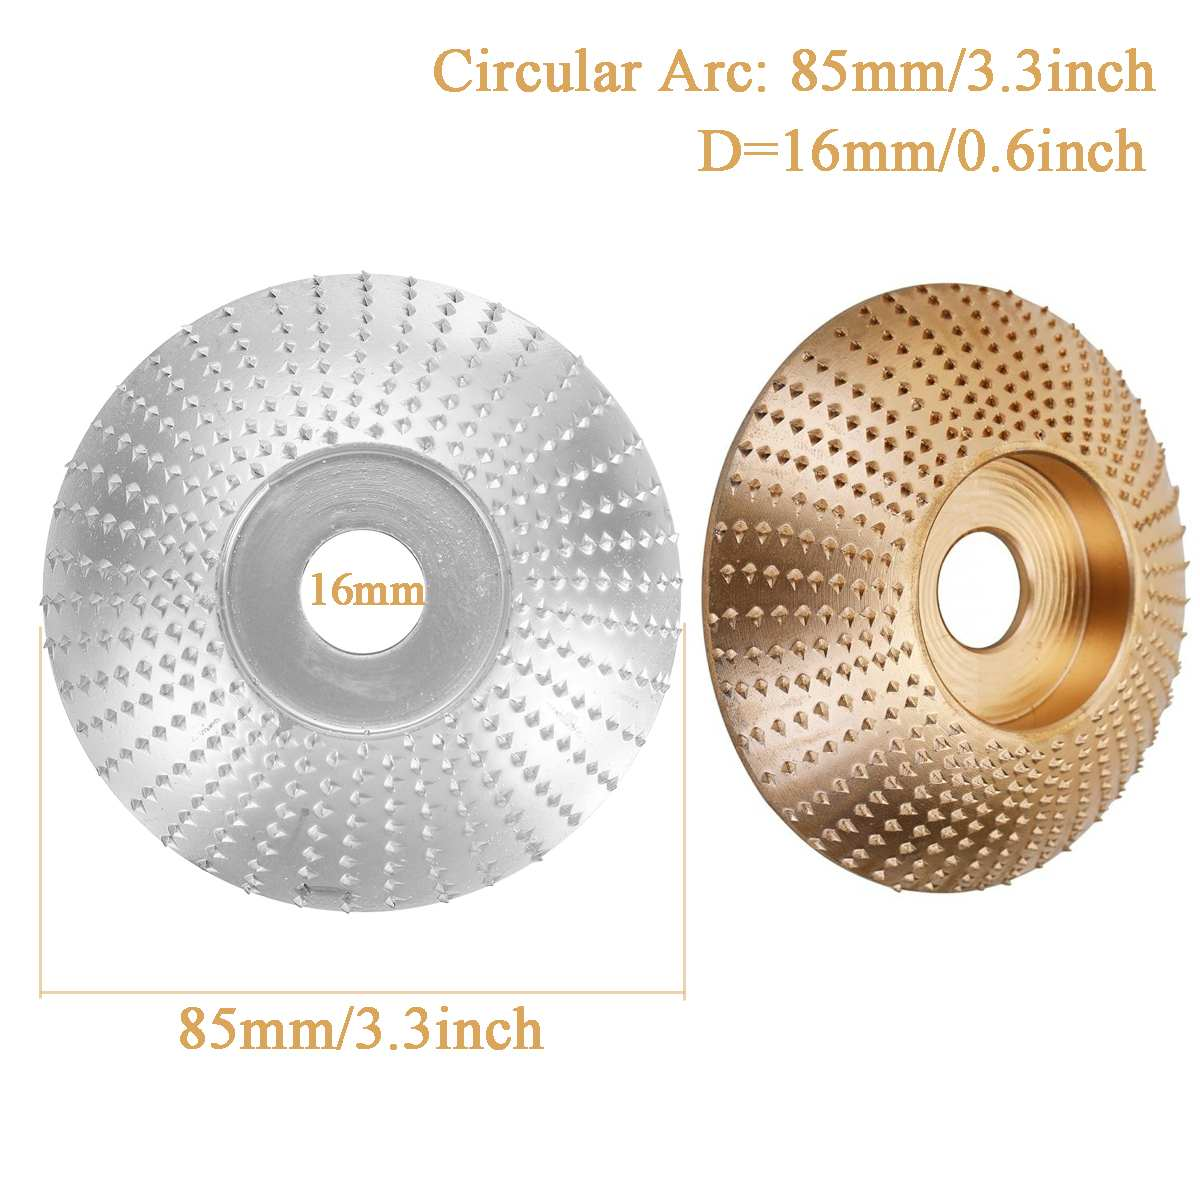 Wood Angle Grinding Wheel Sanding Carving Rotary Tool Abrasive Disc For Angle Grinder Tungsten Carbide Coating Bore Shaping